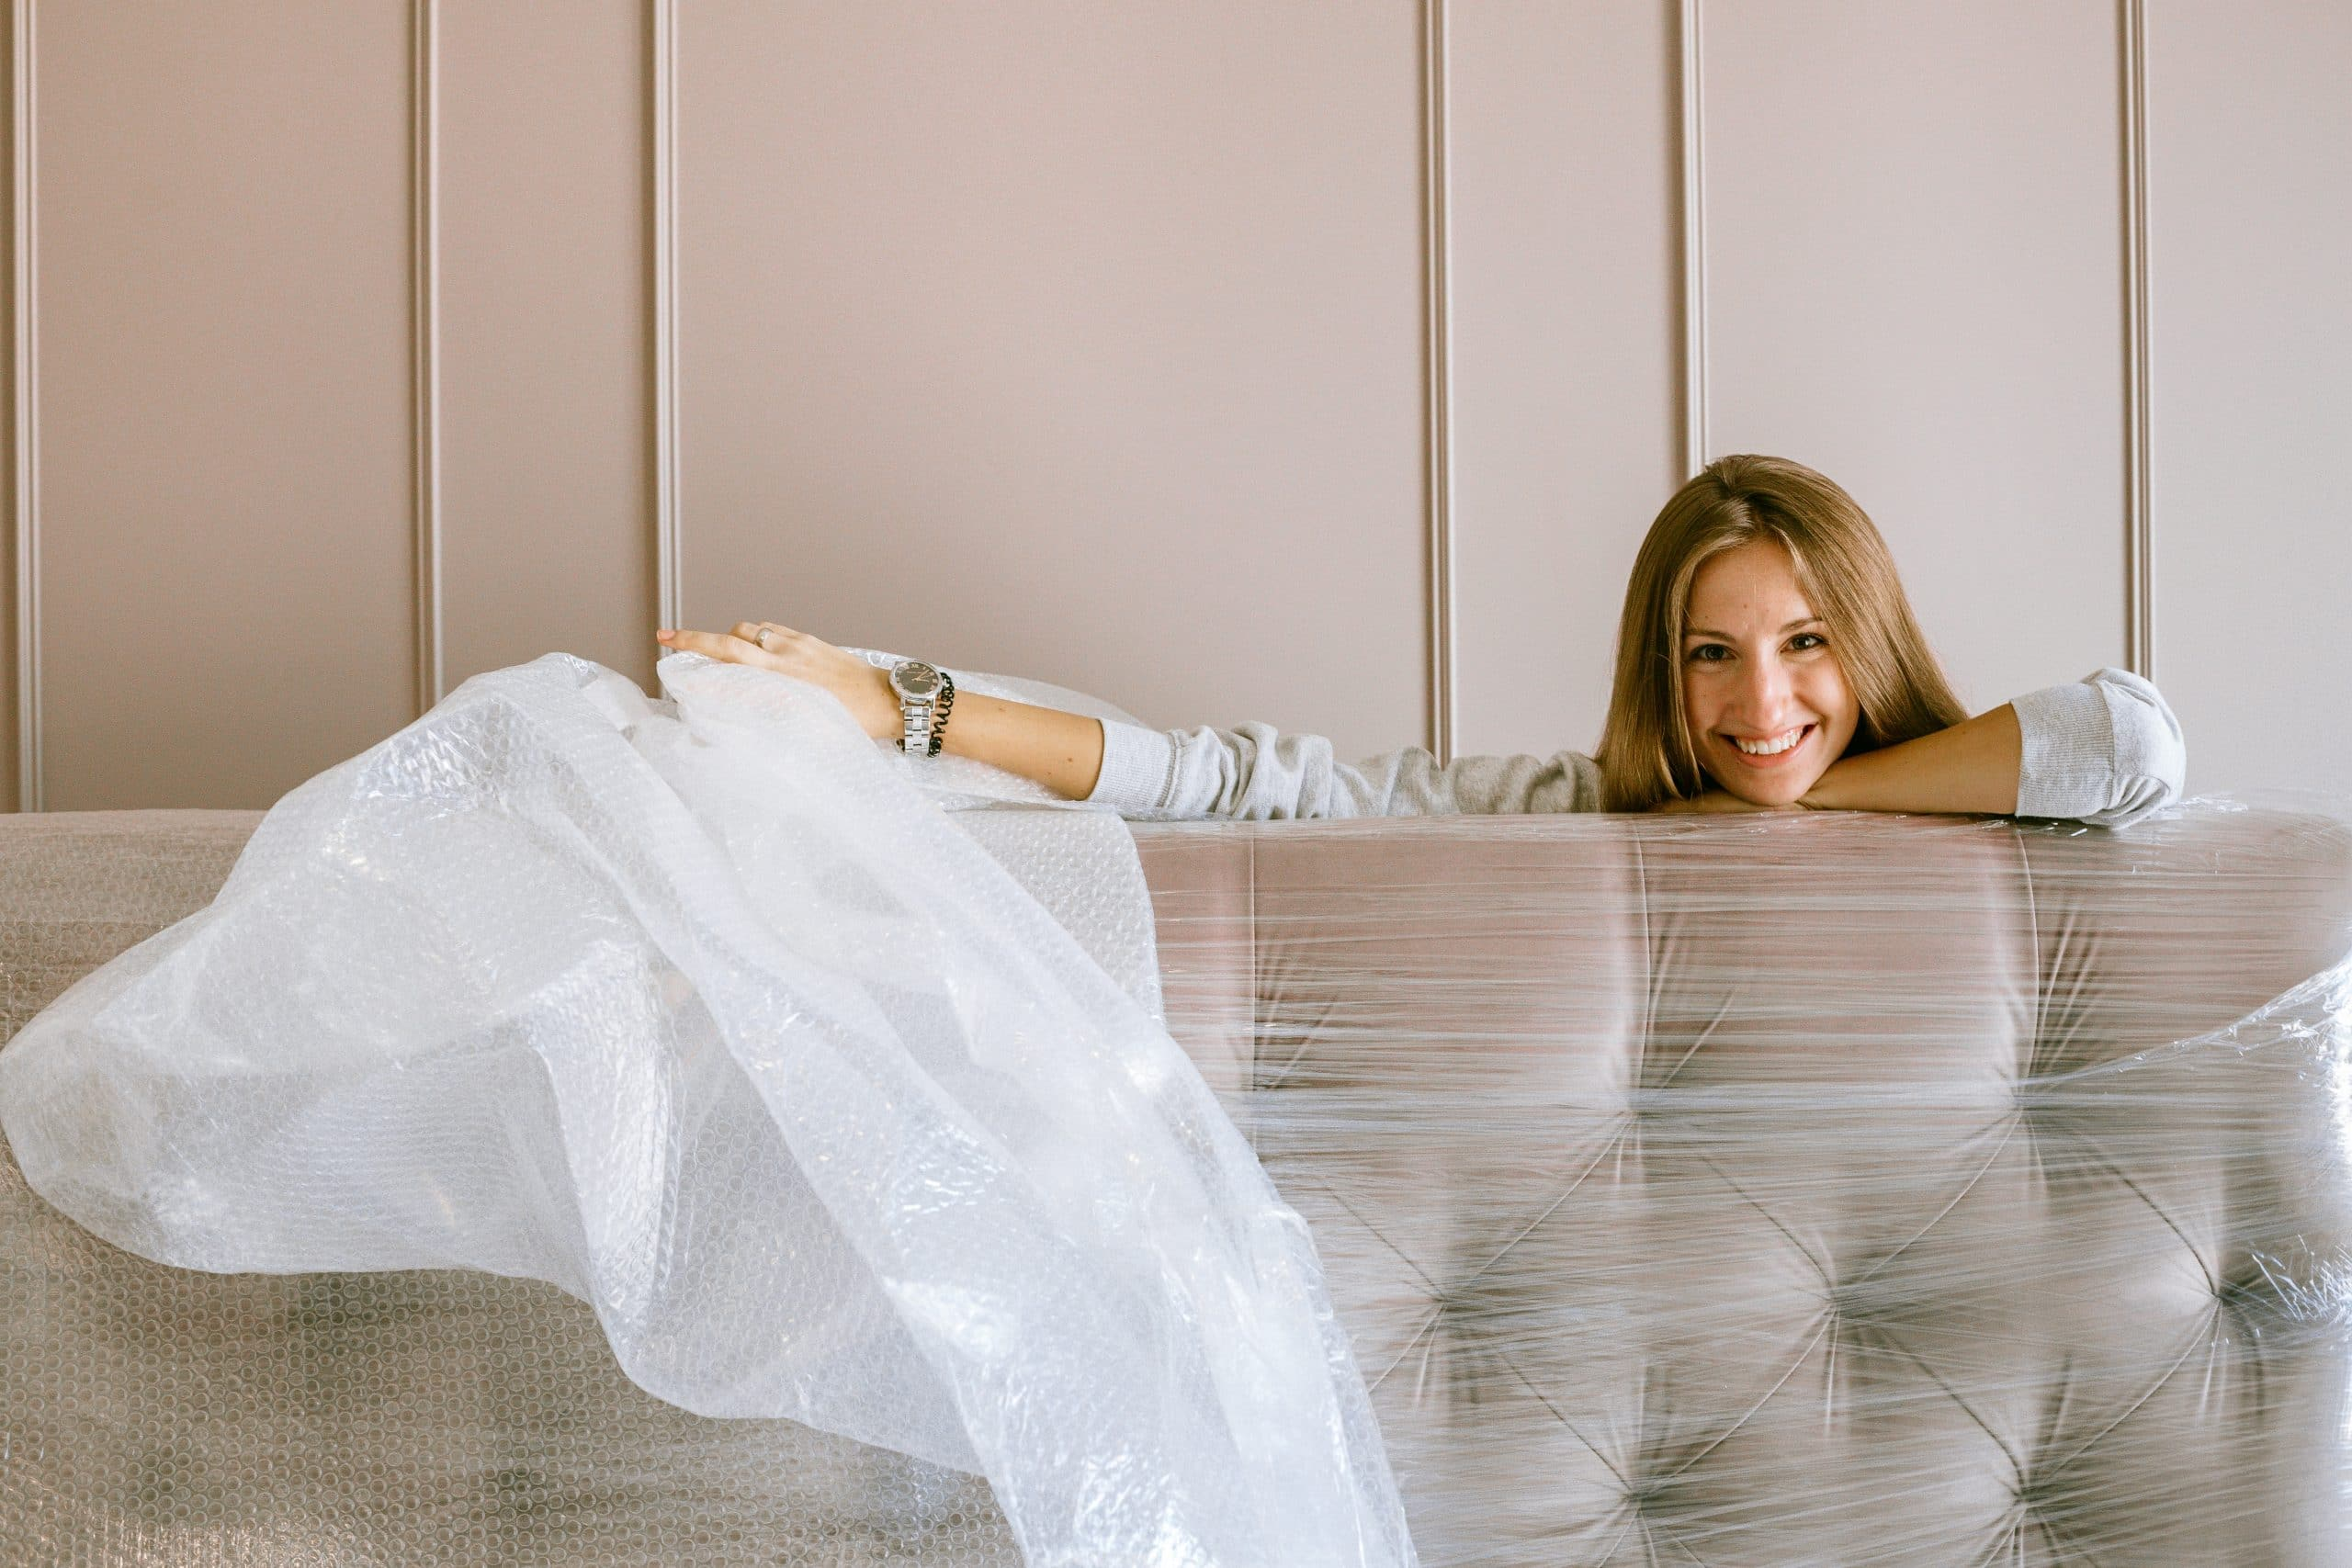 A woman leaning on a couch covered in plastic